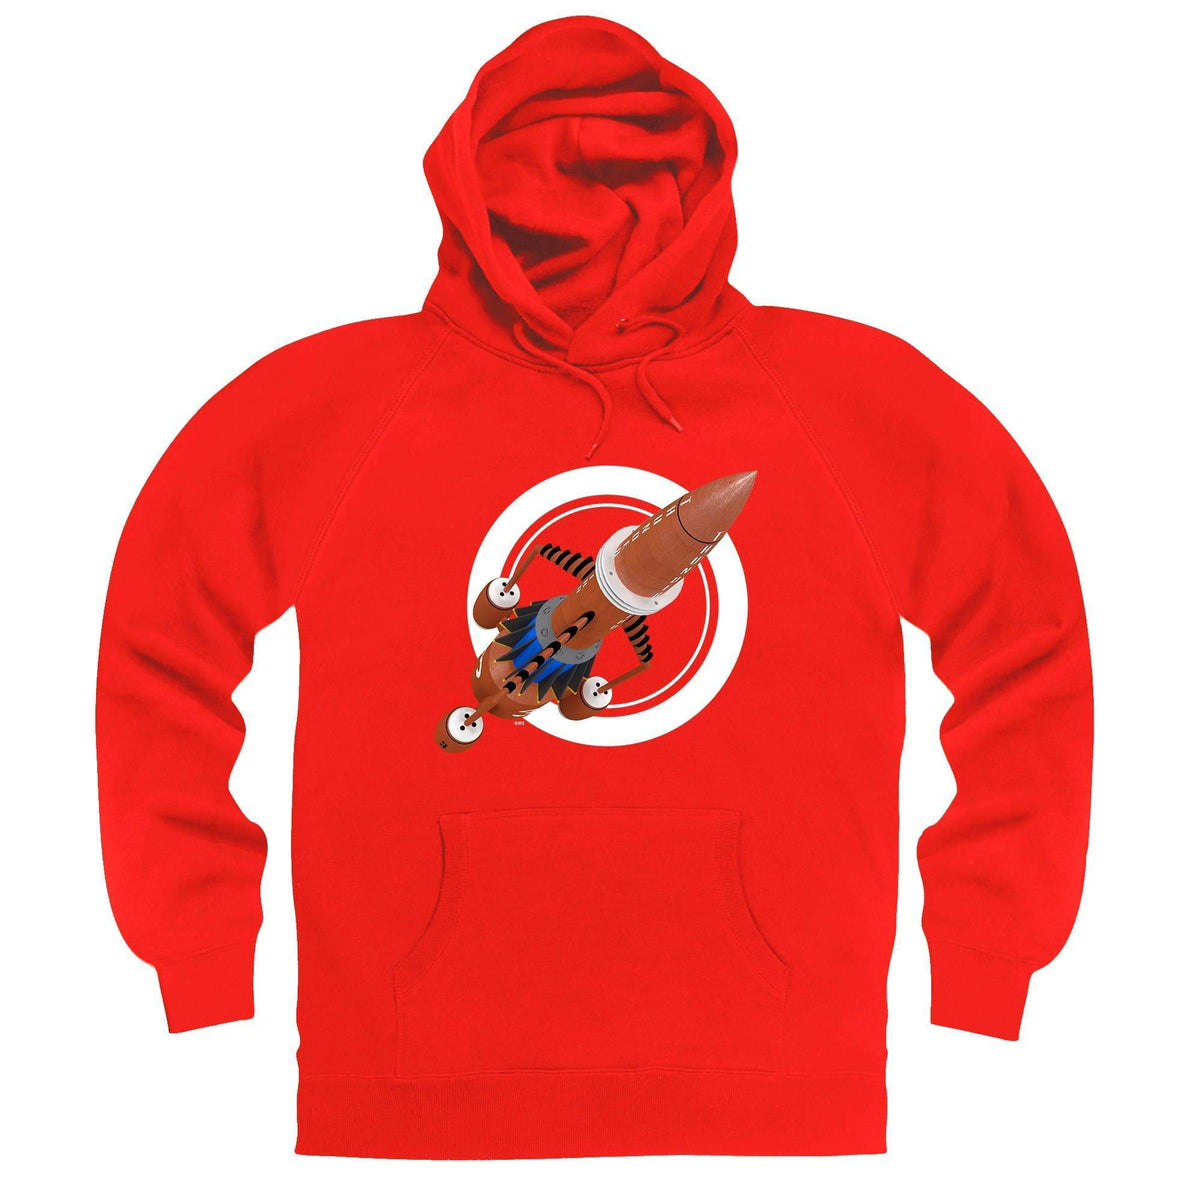 Thunderbird 3 Hoodie [Official & Exclusive] - The Gerry Anderson Store